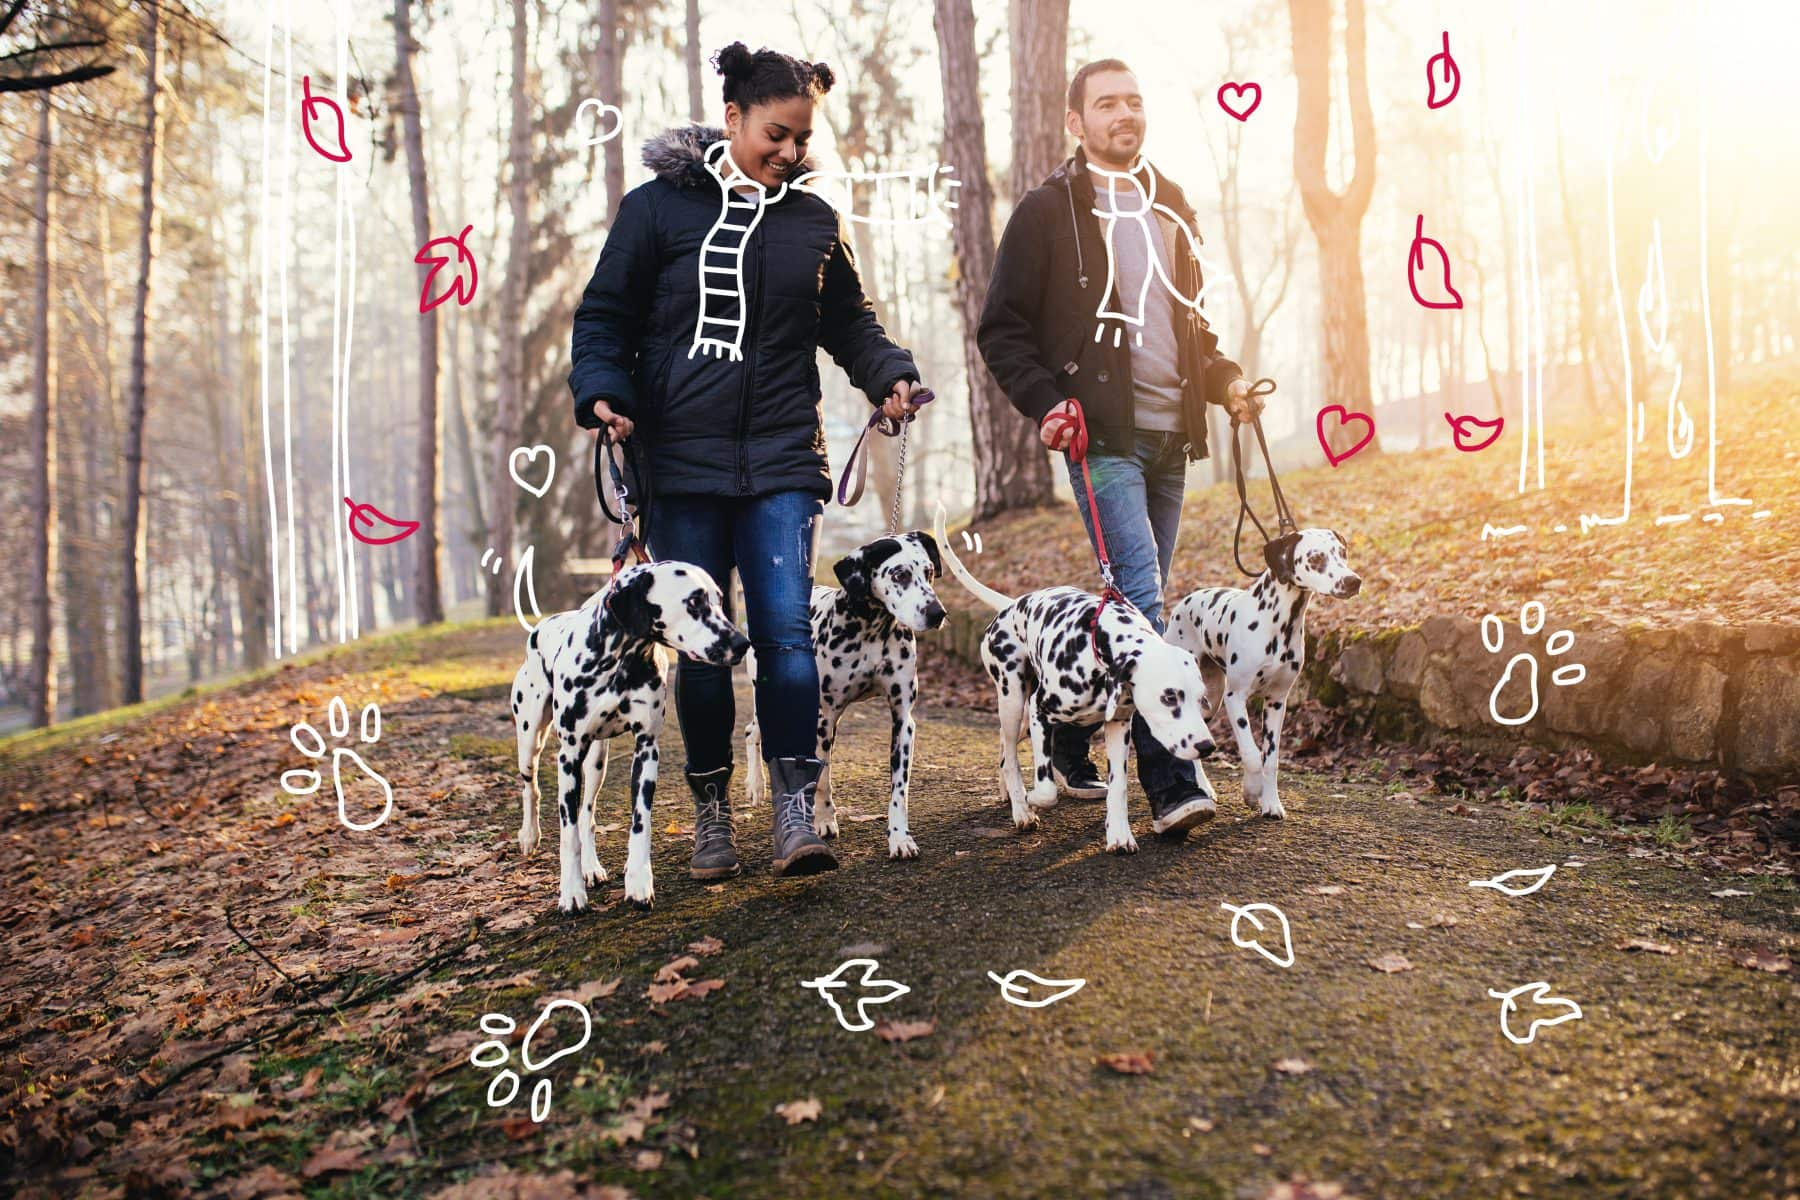 Dog walkers with Dalmatian dogs - How often should I walk my dog?